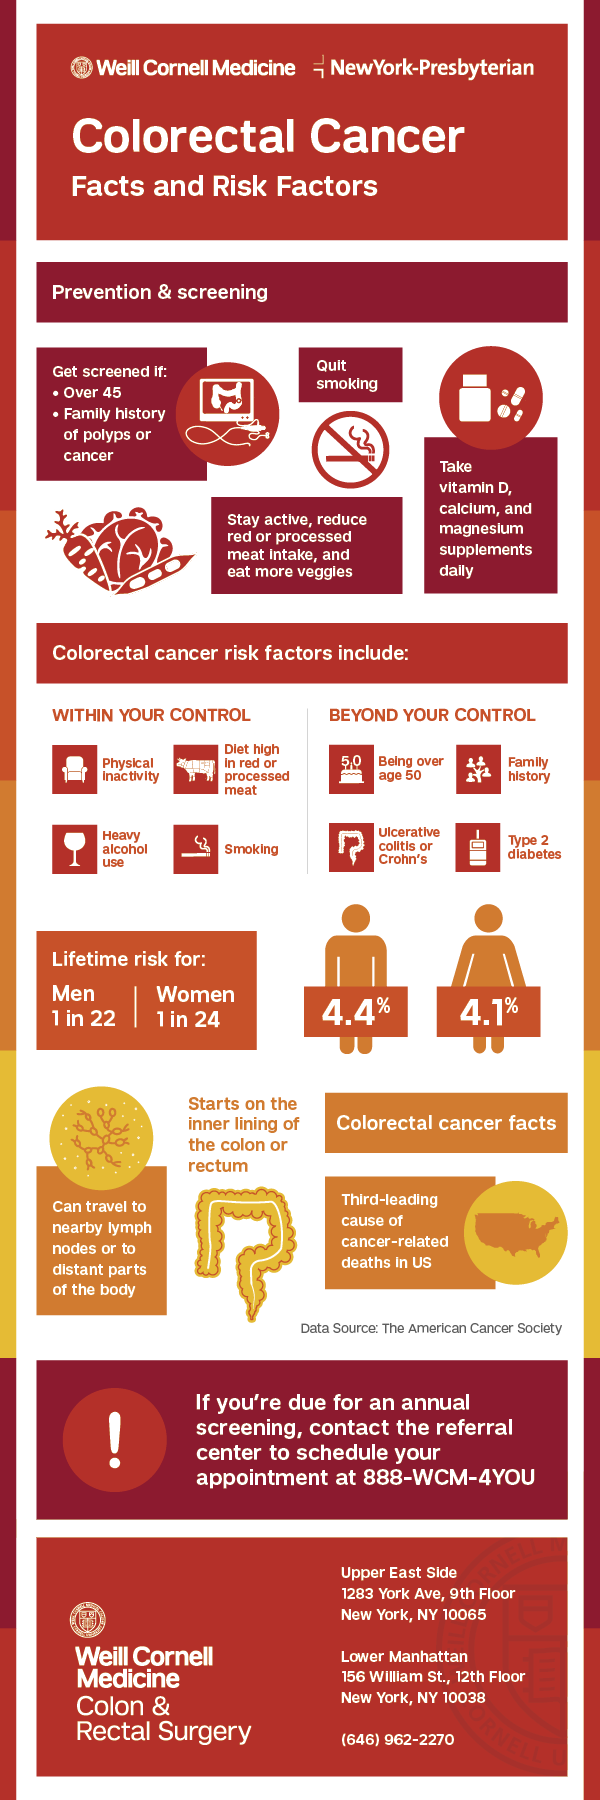 Colorectal Cancer Facts and Risk Factors. If you're due for an annual screening, contact the referral center to schedule your appointment at 888-WCM-4YOU